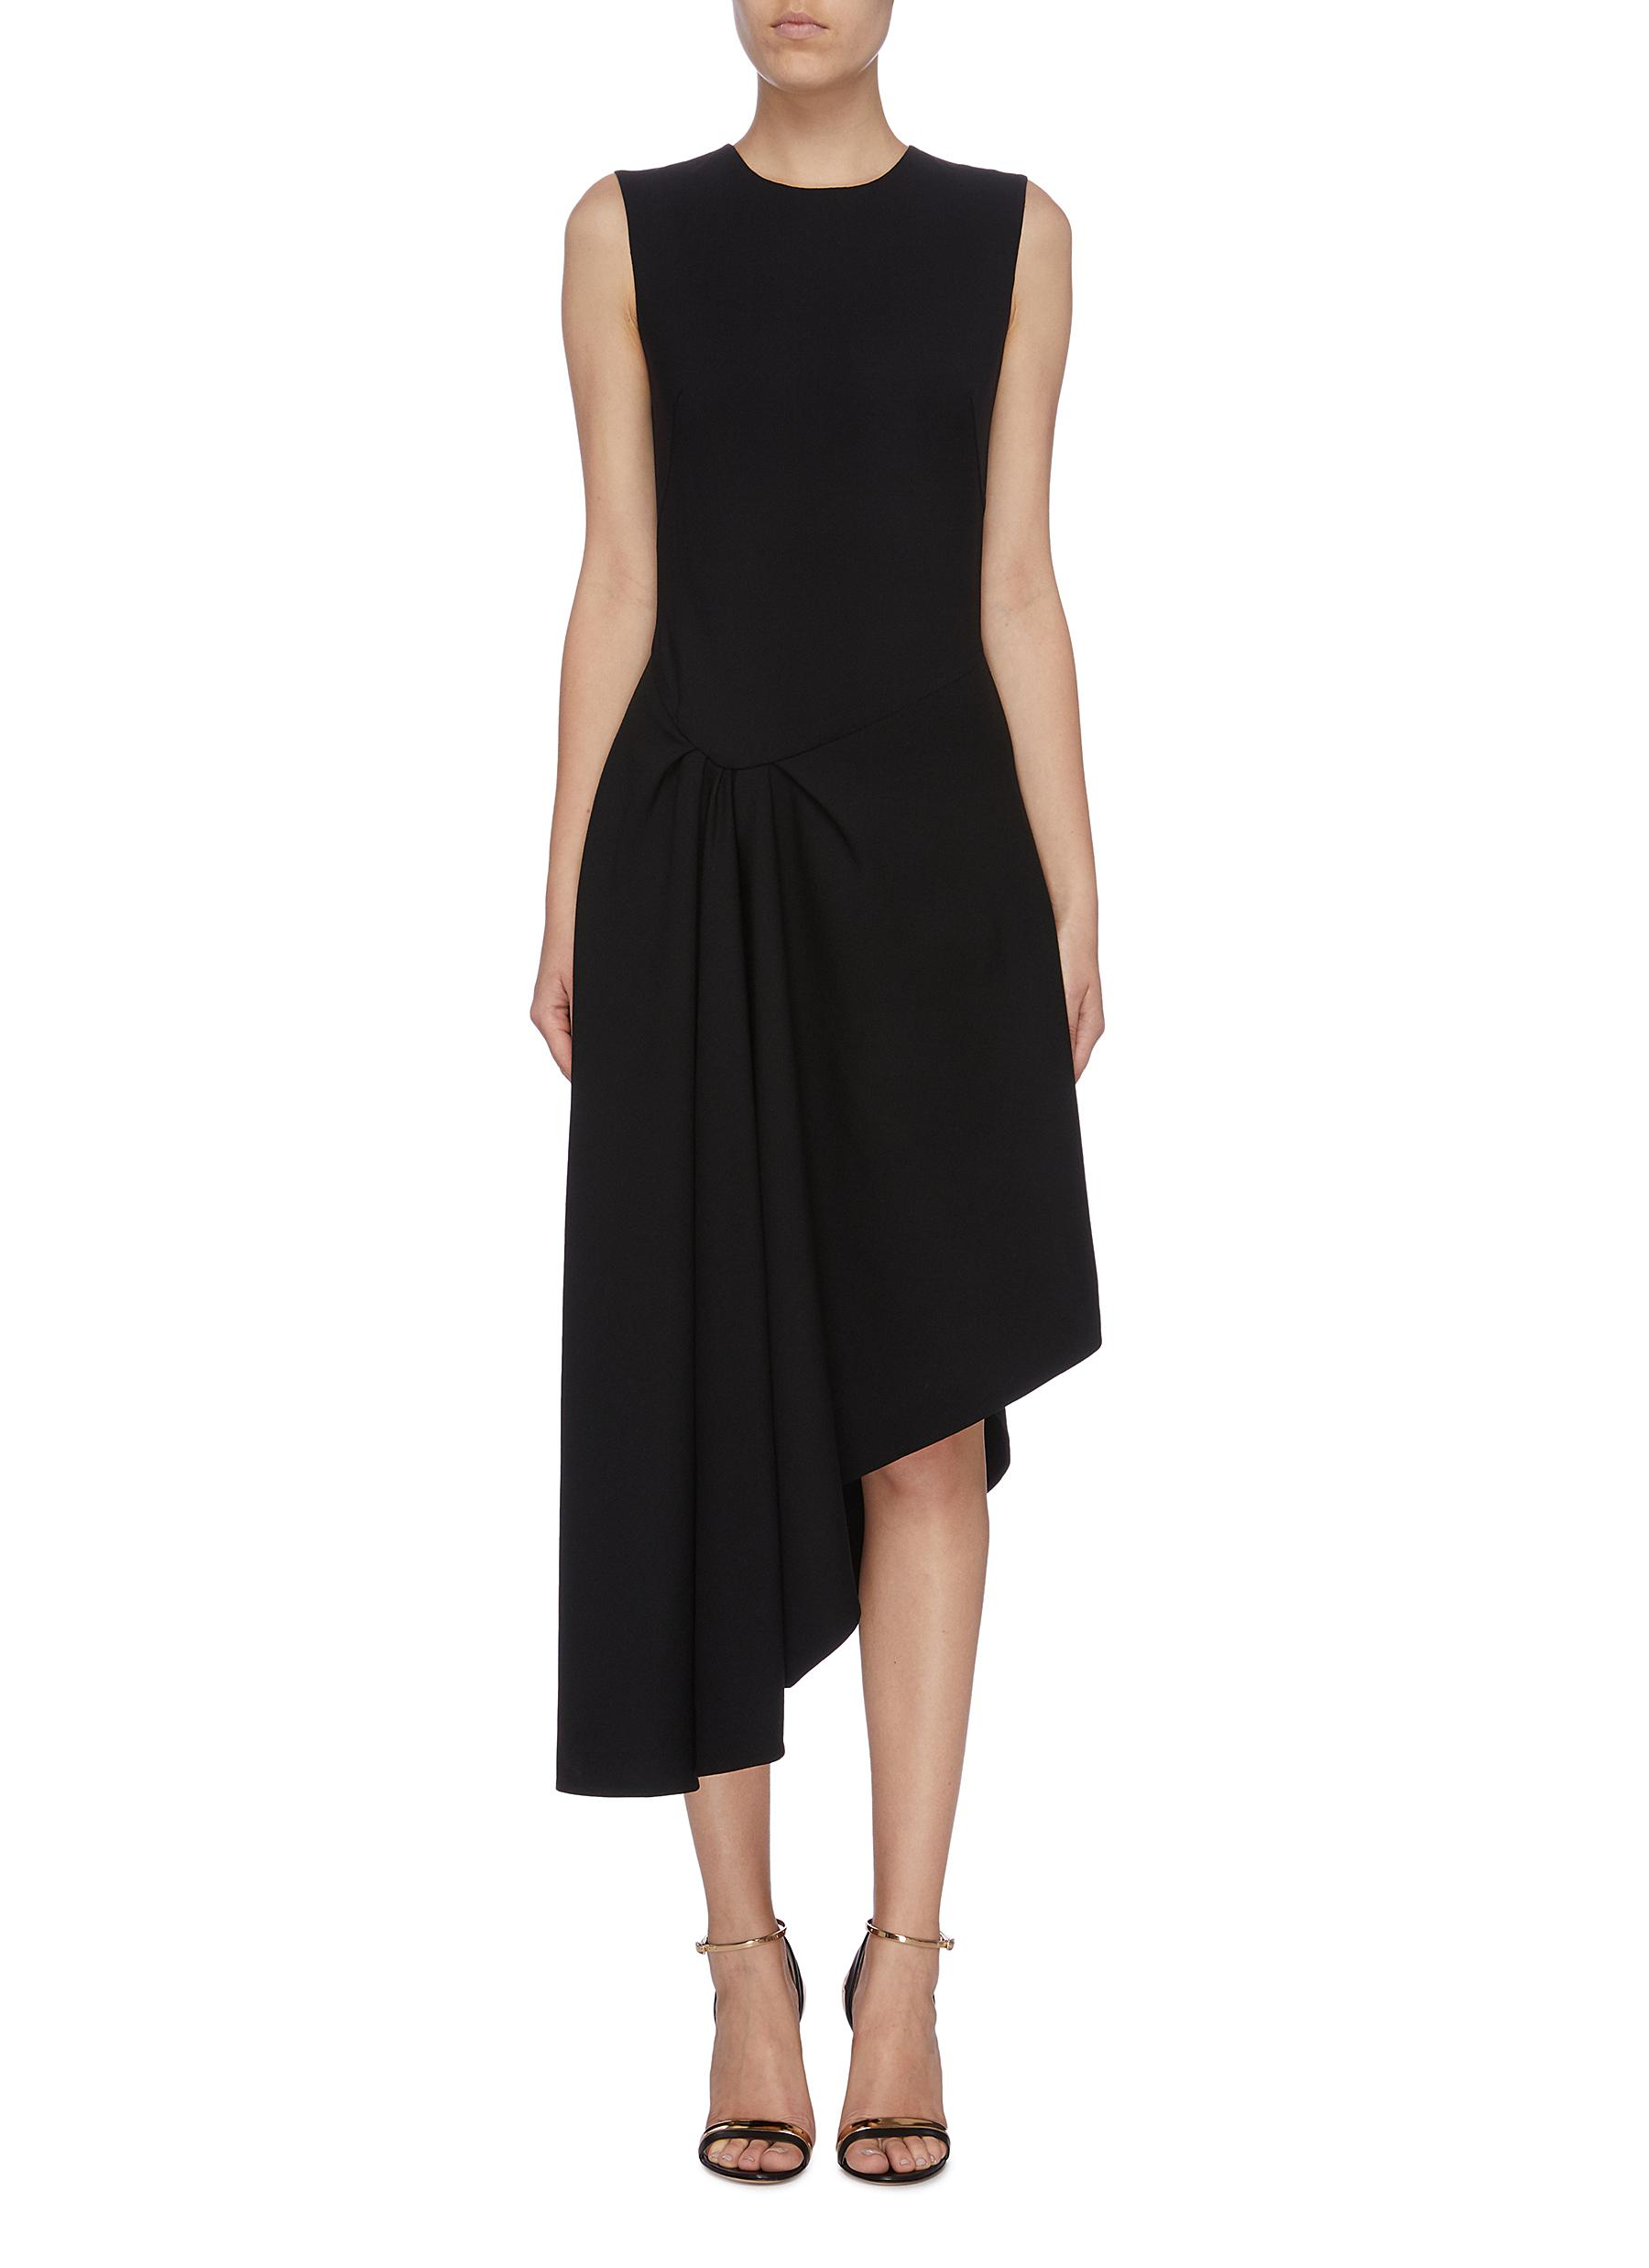 Gathered side asymmetric sleeveless dress by Oscar De La Renta